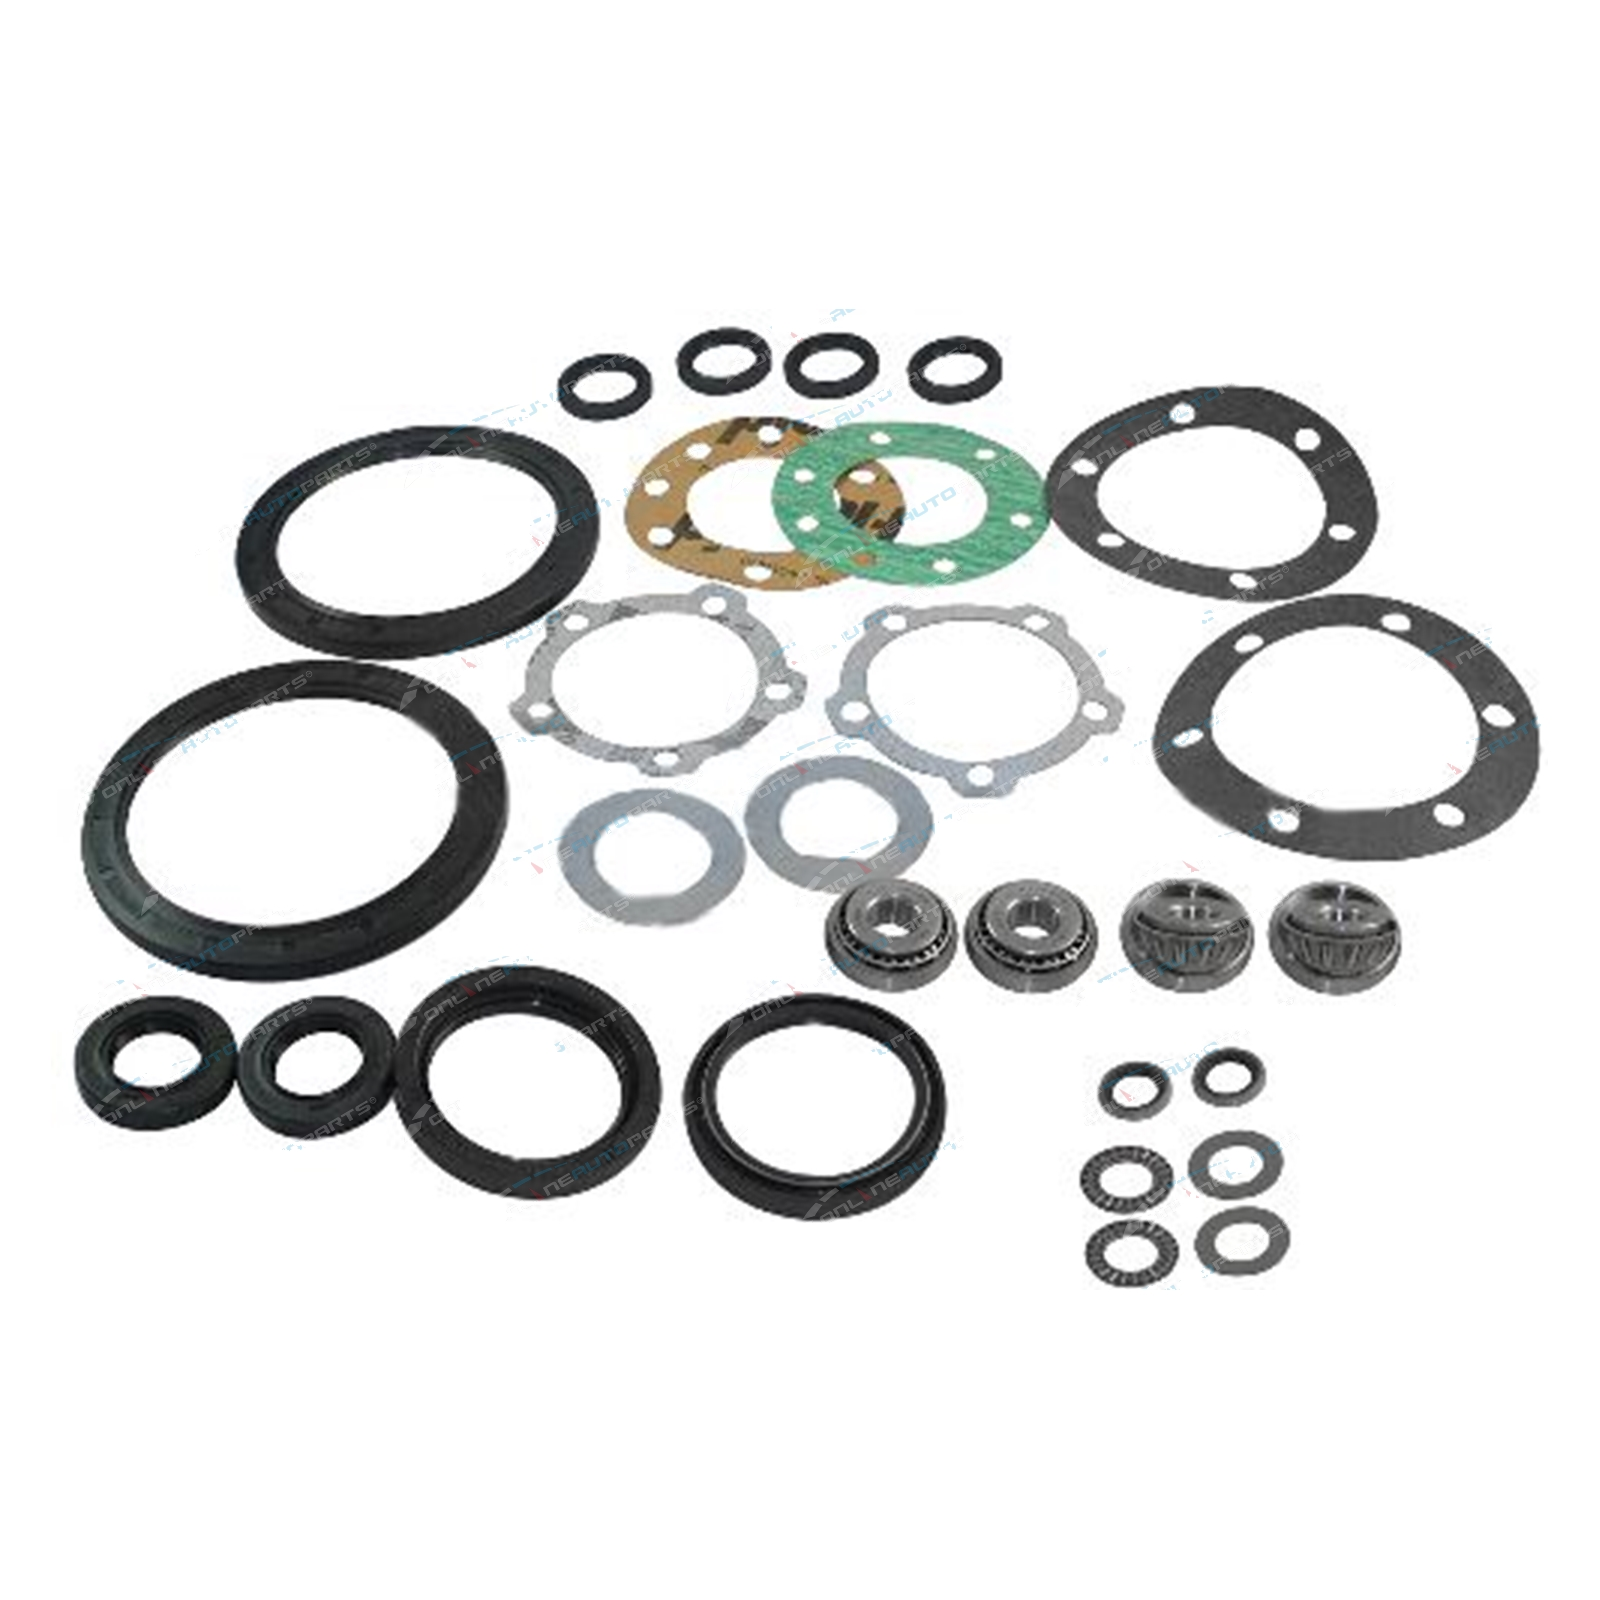 Landrover Discovery ABS 1994-99 Swivel Hub Rebuild Kit